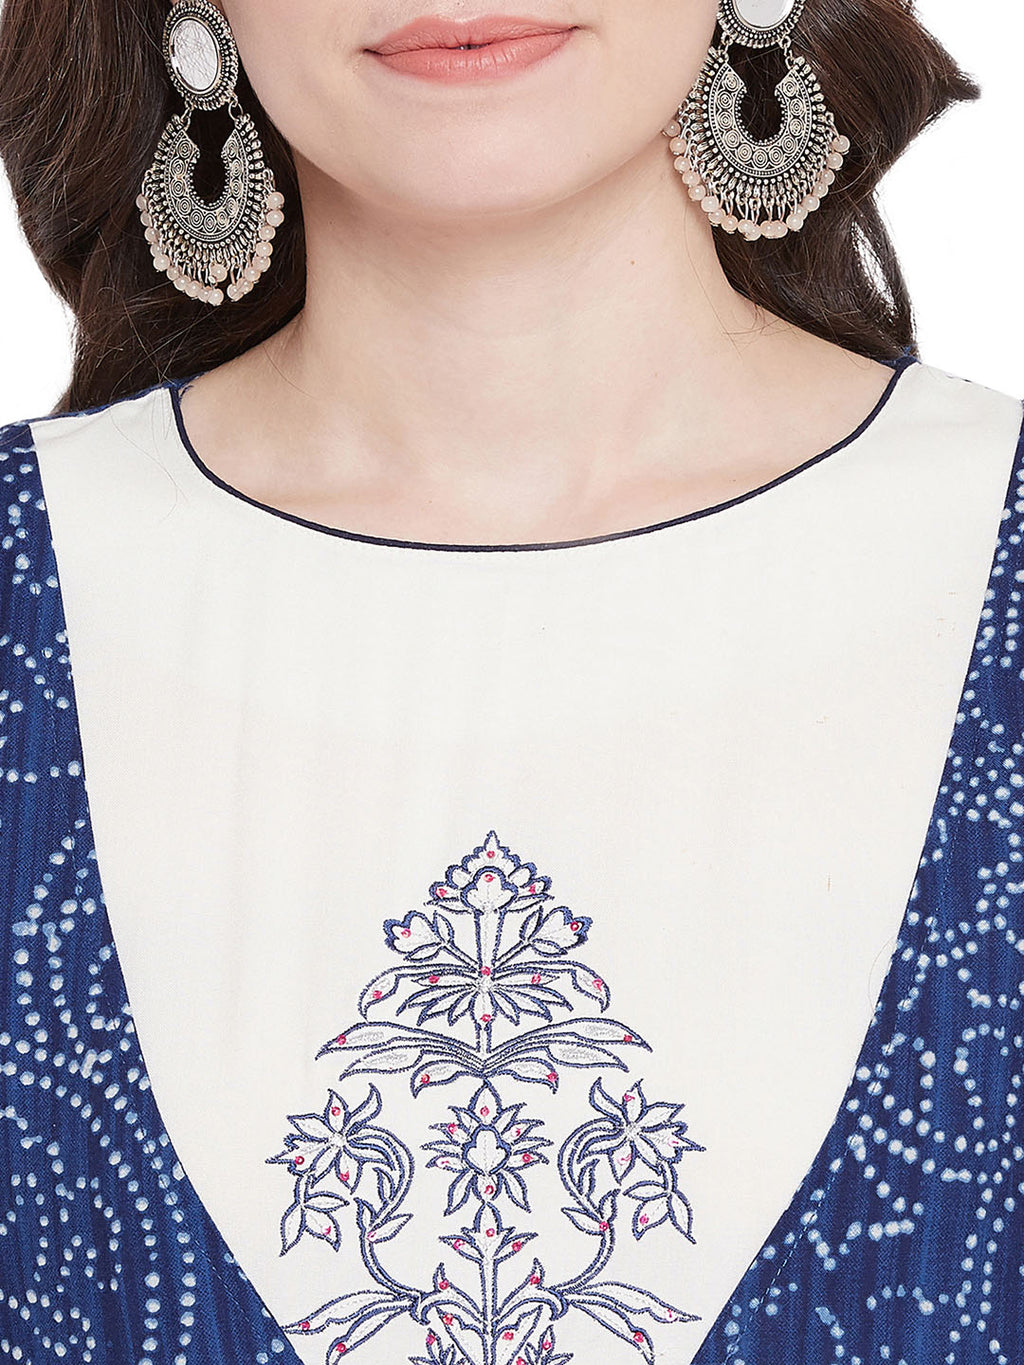 MEESAN Blue-White Double Layer Rayon Bandhani Print Kurti for Women